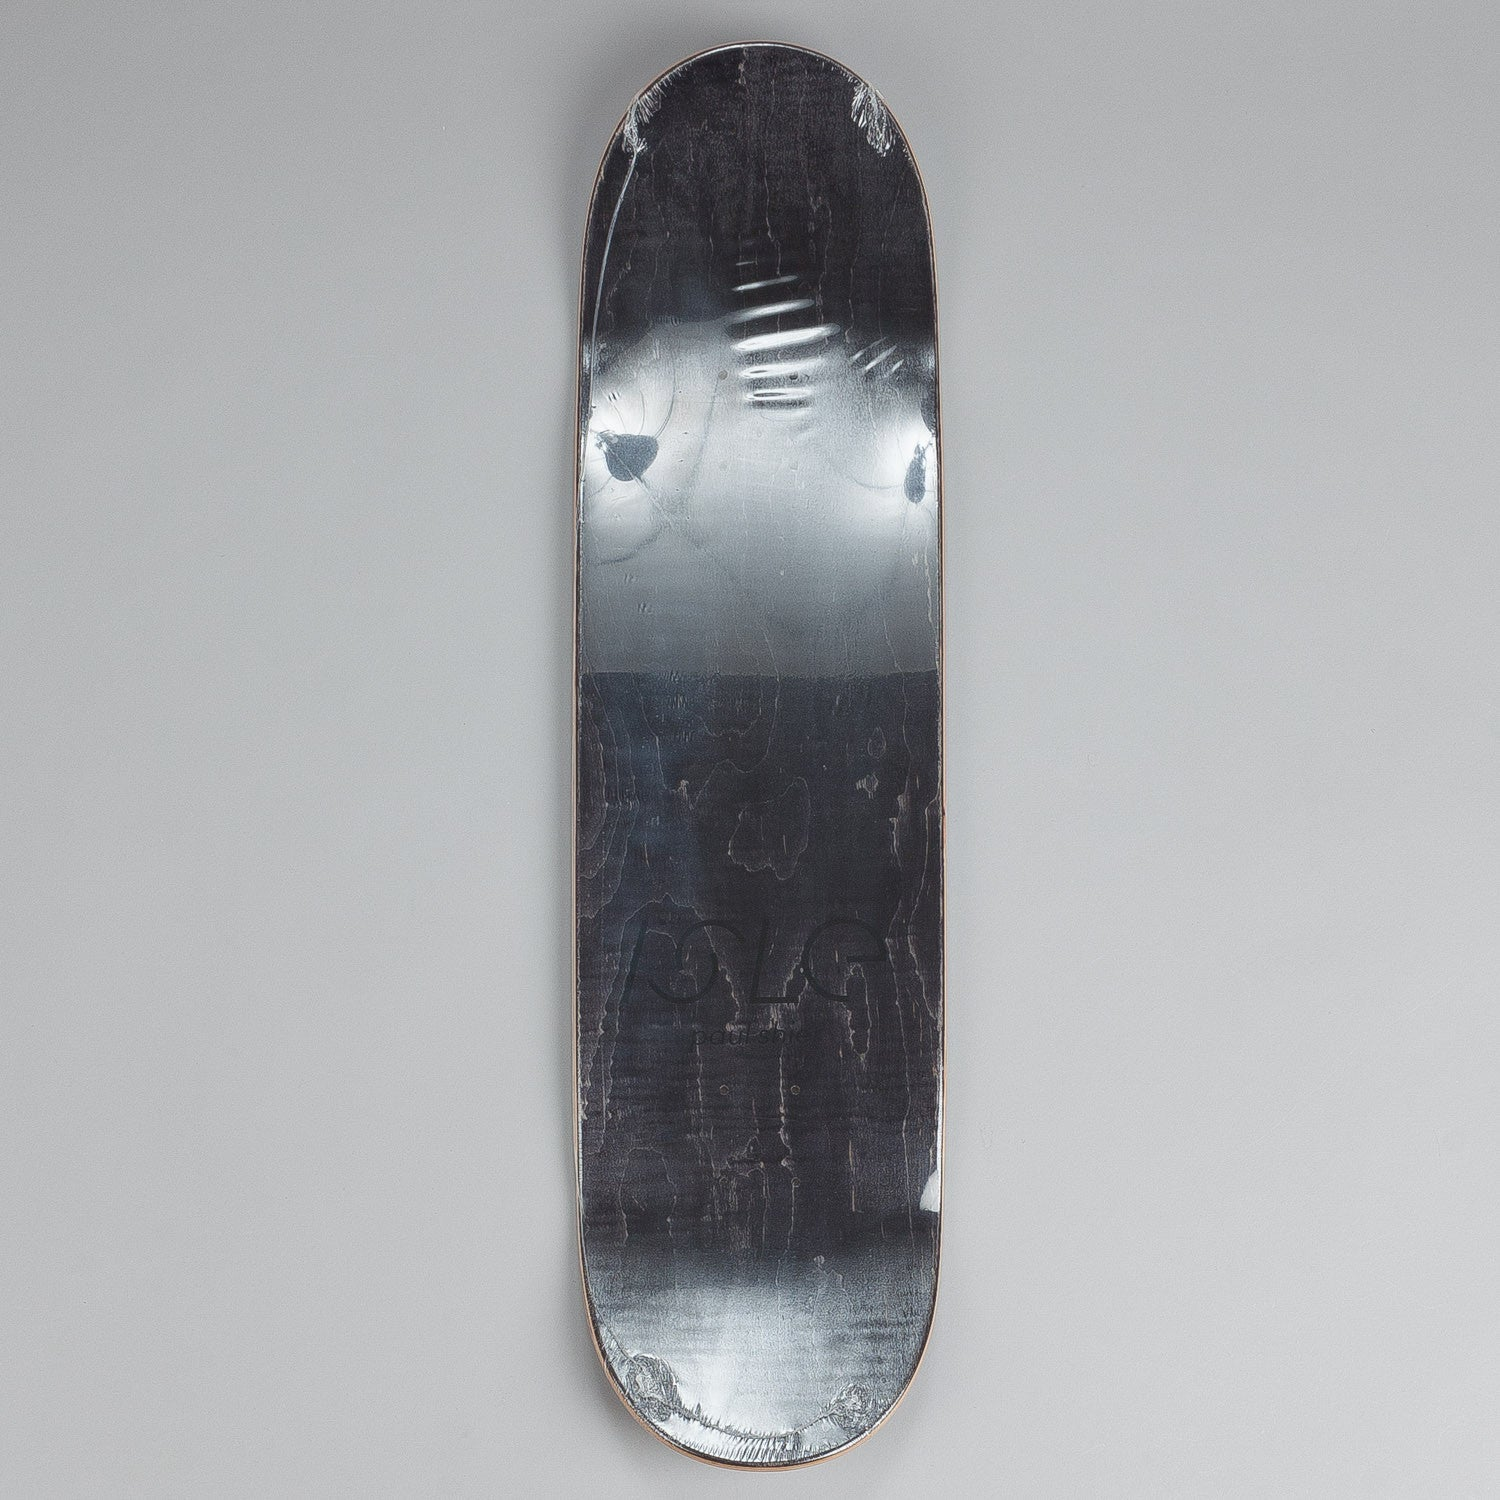 Isle Editions Series - Paul Shier Deck 8.5